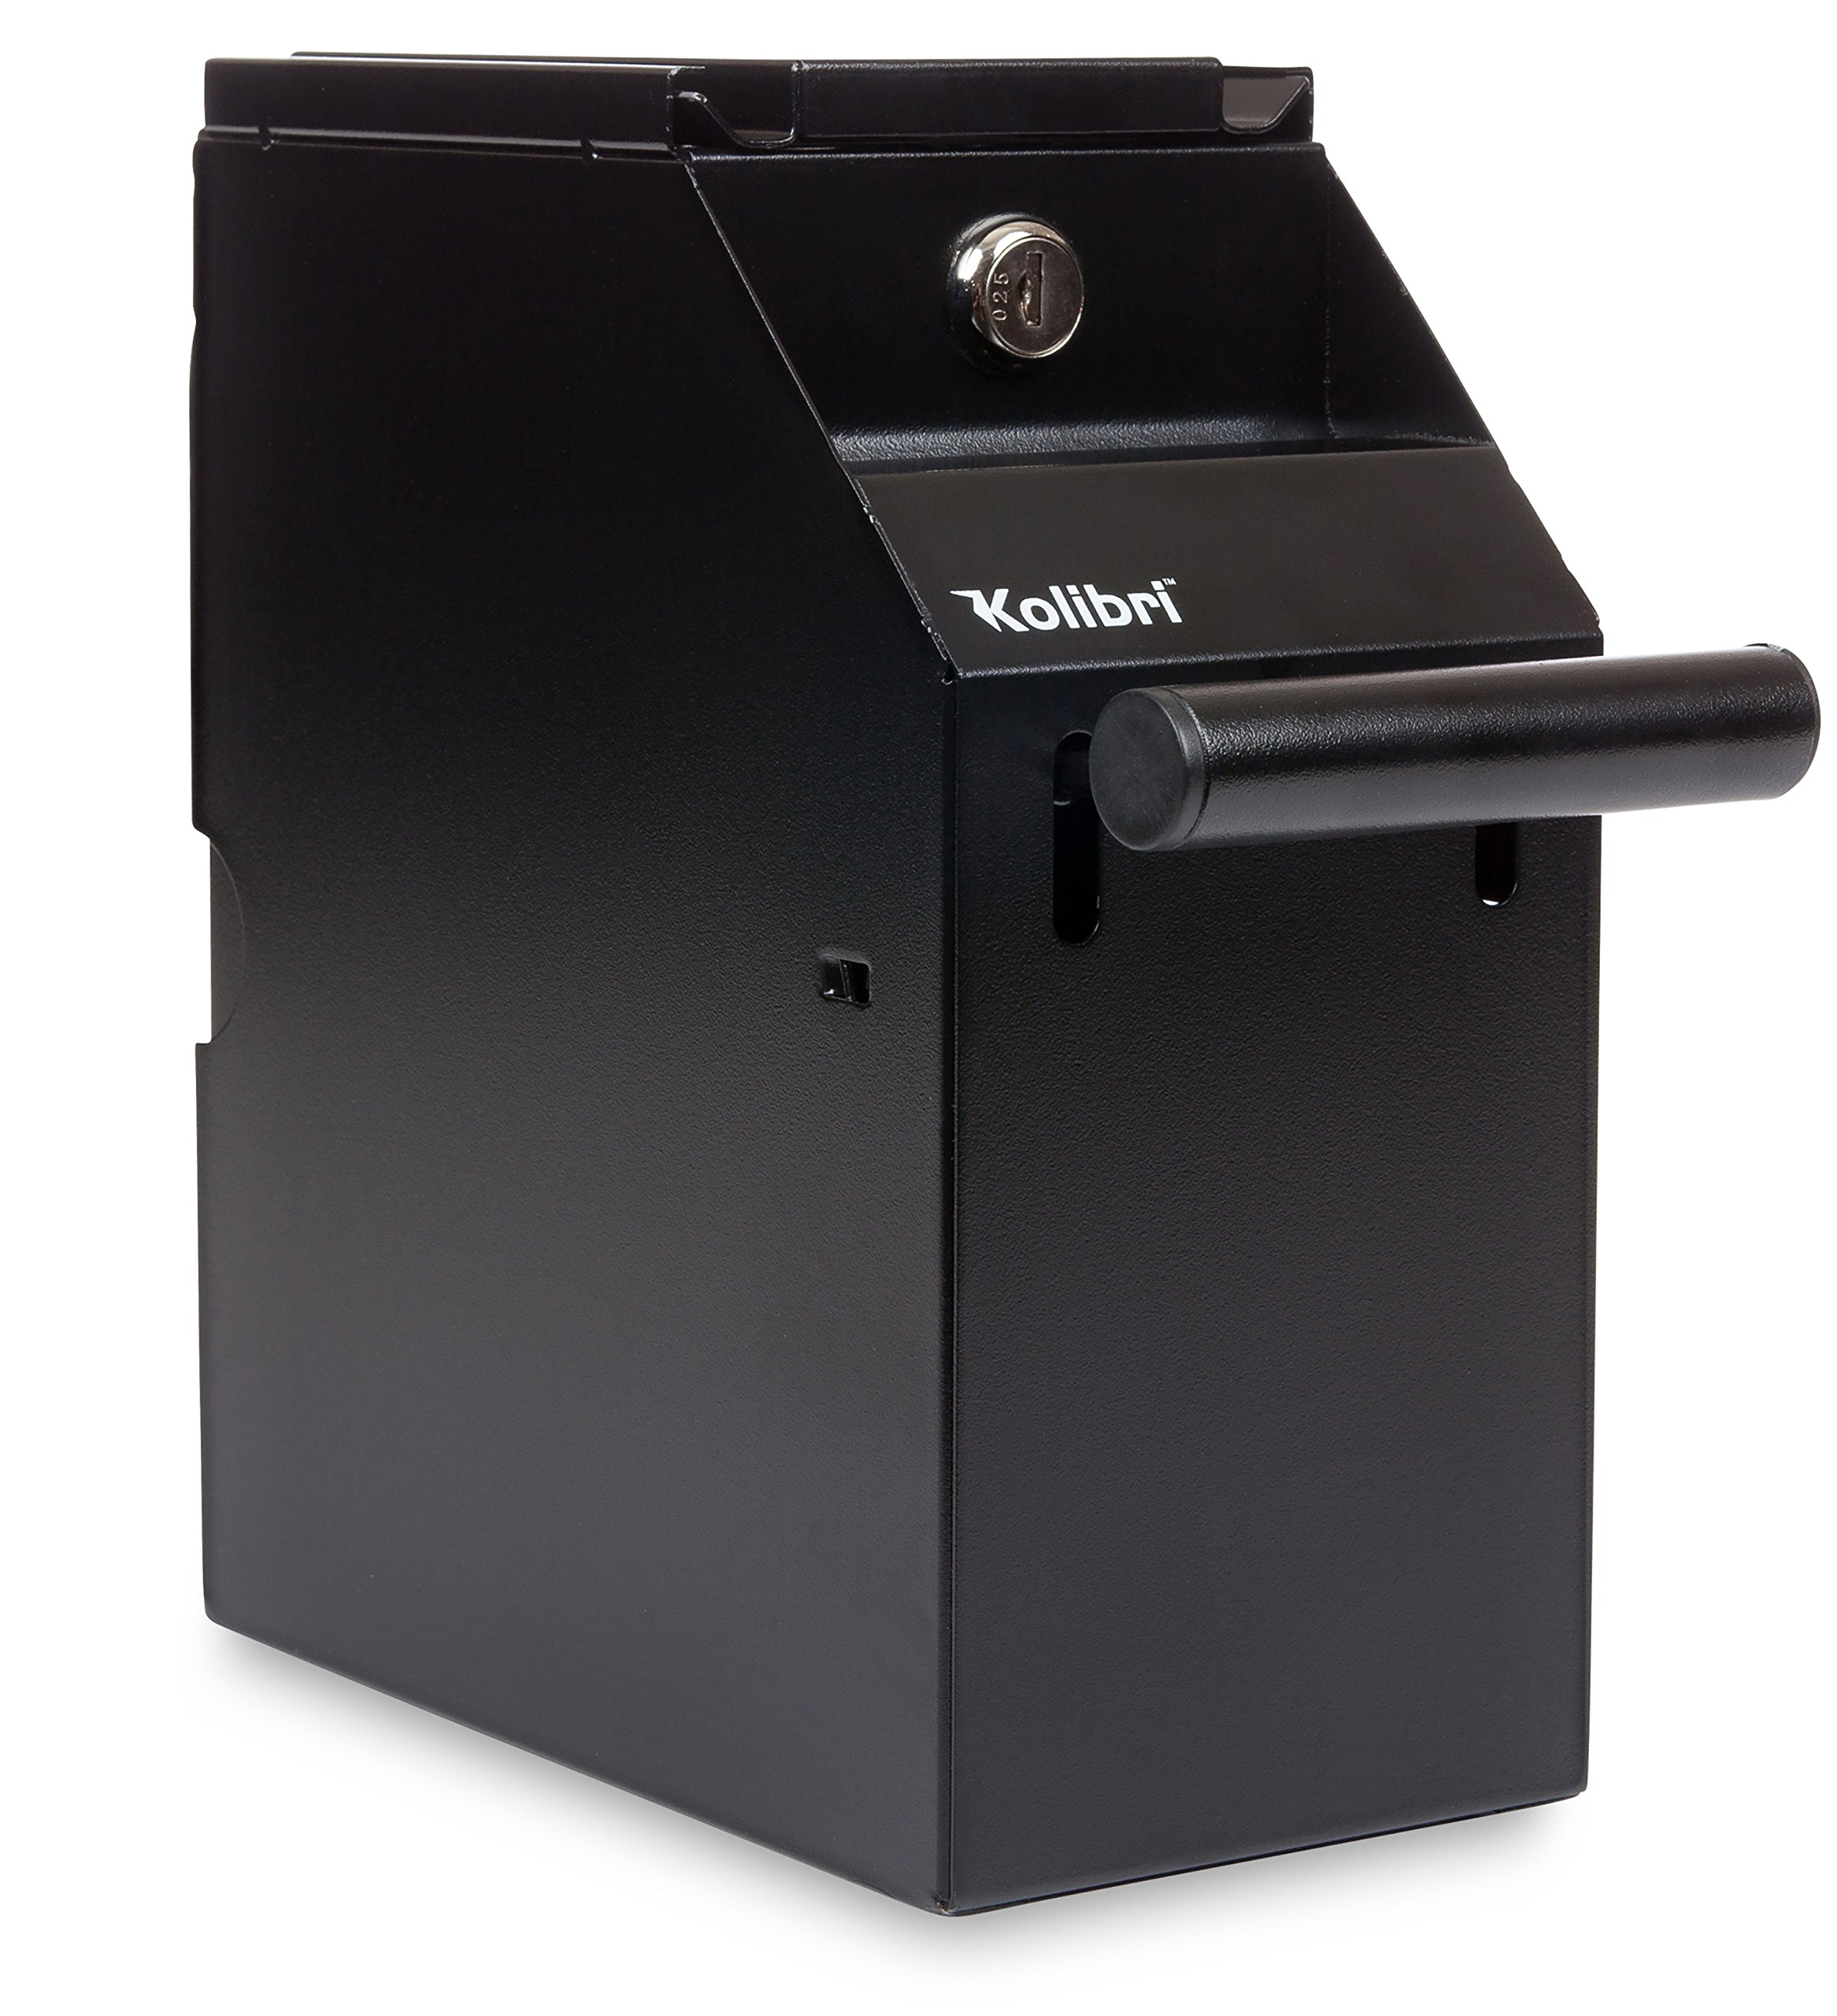 Kolibri Point-of-Sale Drop Safe with All-Steel Construction, Installs Under Counter by Kolibri (Image #1)